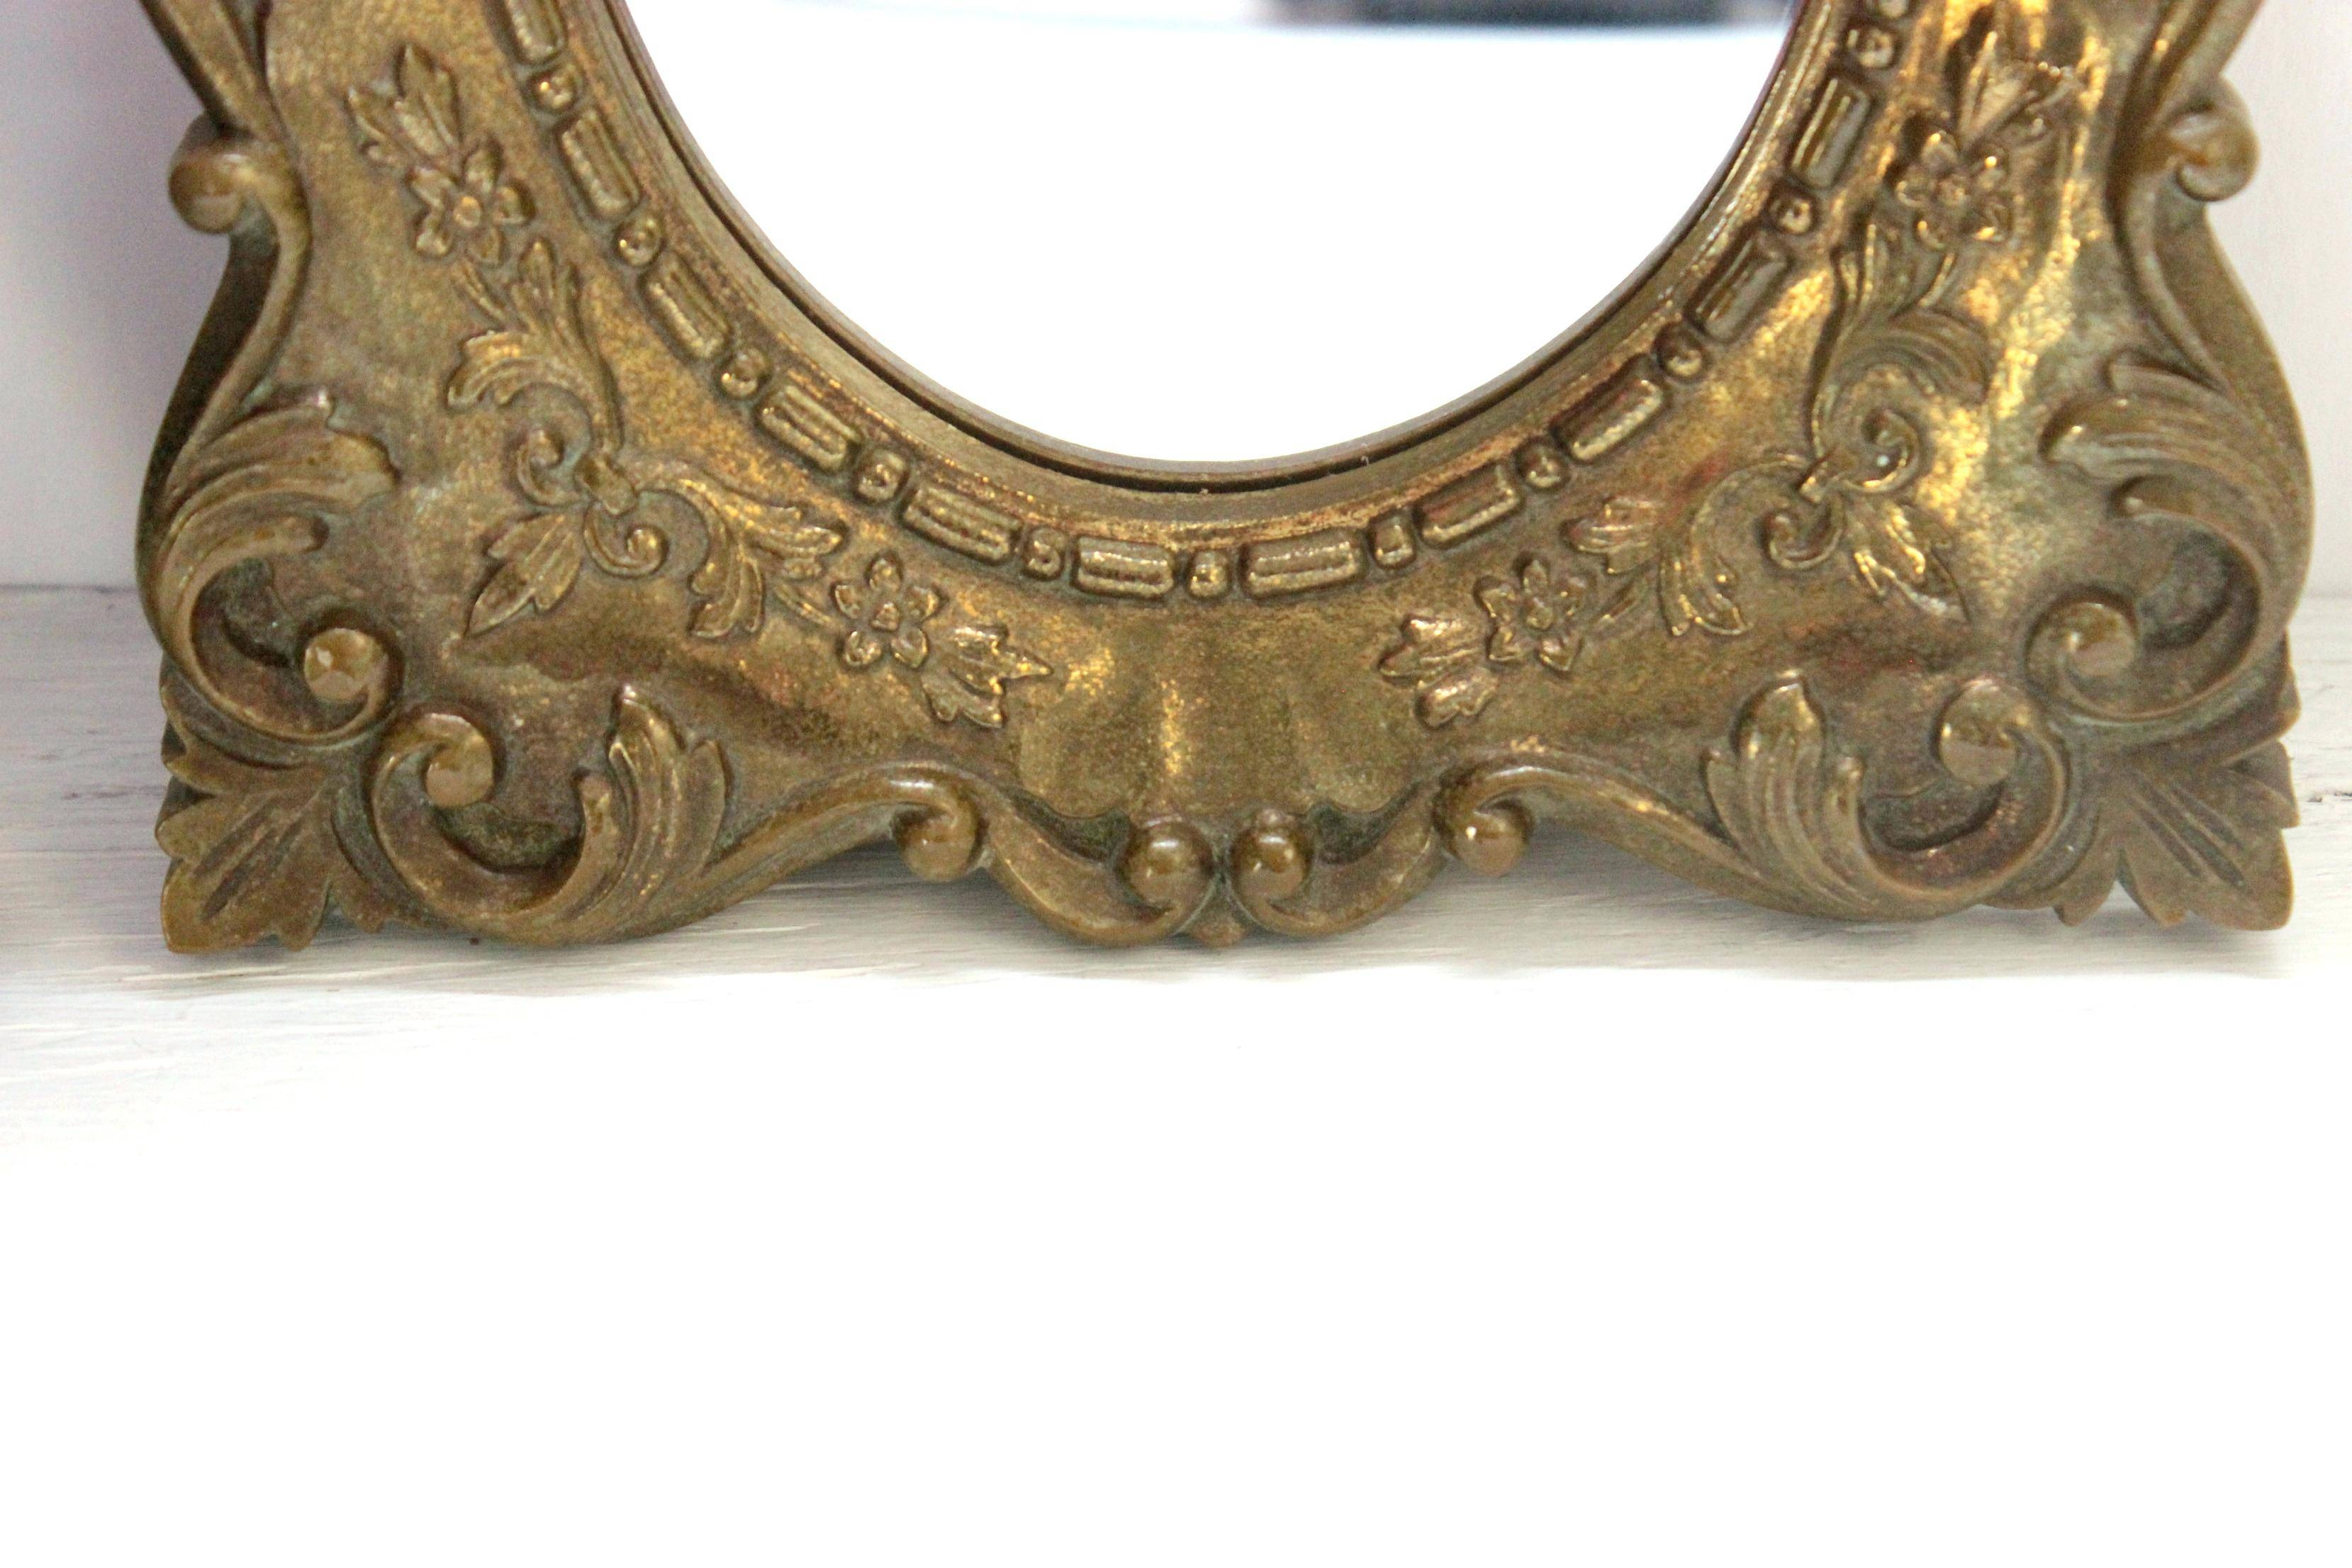 Small Ornate Bathroom Mirrors Mirror Uk – Shopwiz regarding Small Ornate Mirrors (Image 20 of 25)